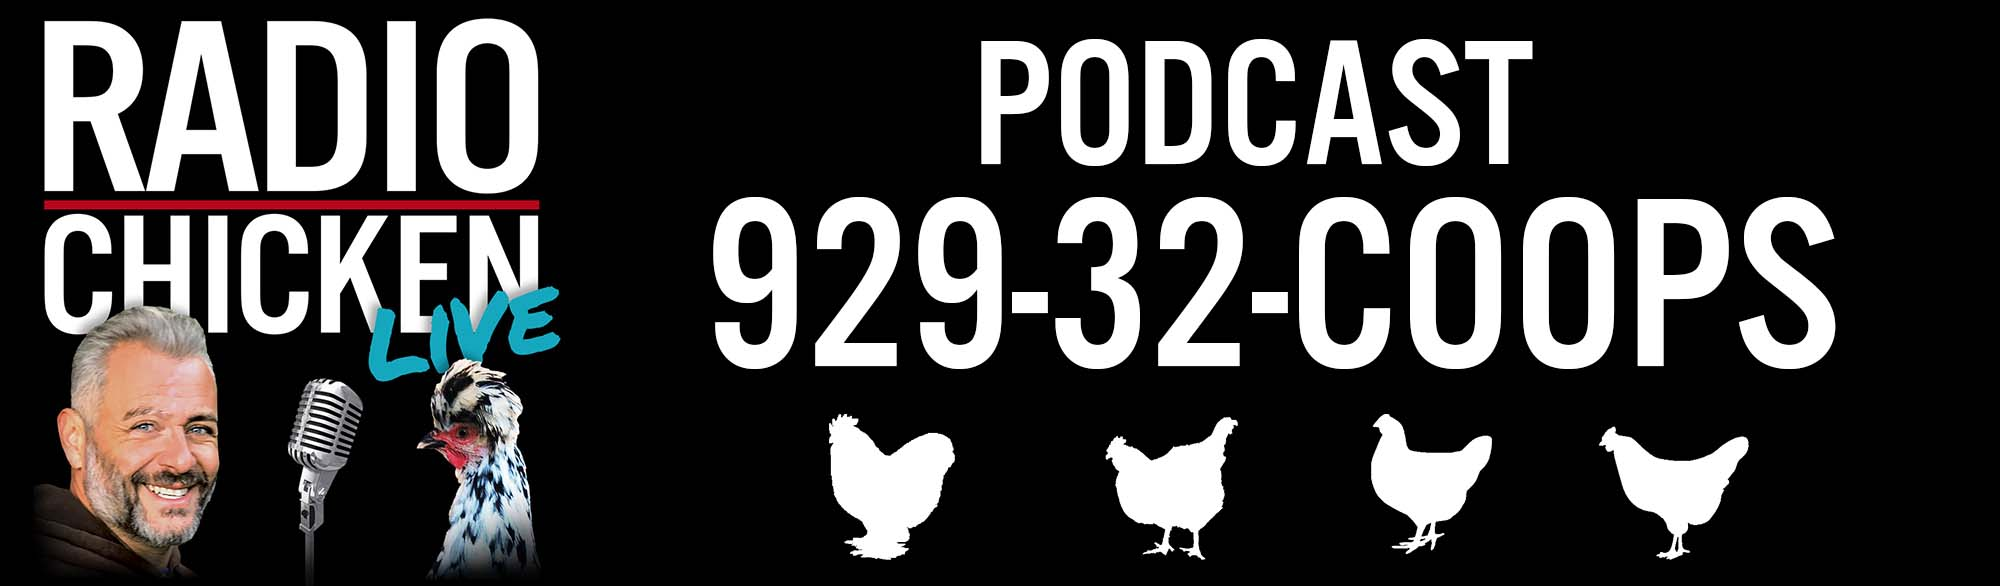 radio chicken LIVE PODCAST HEADER